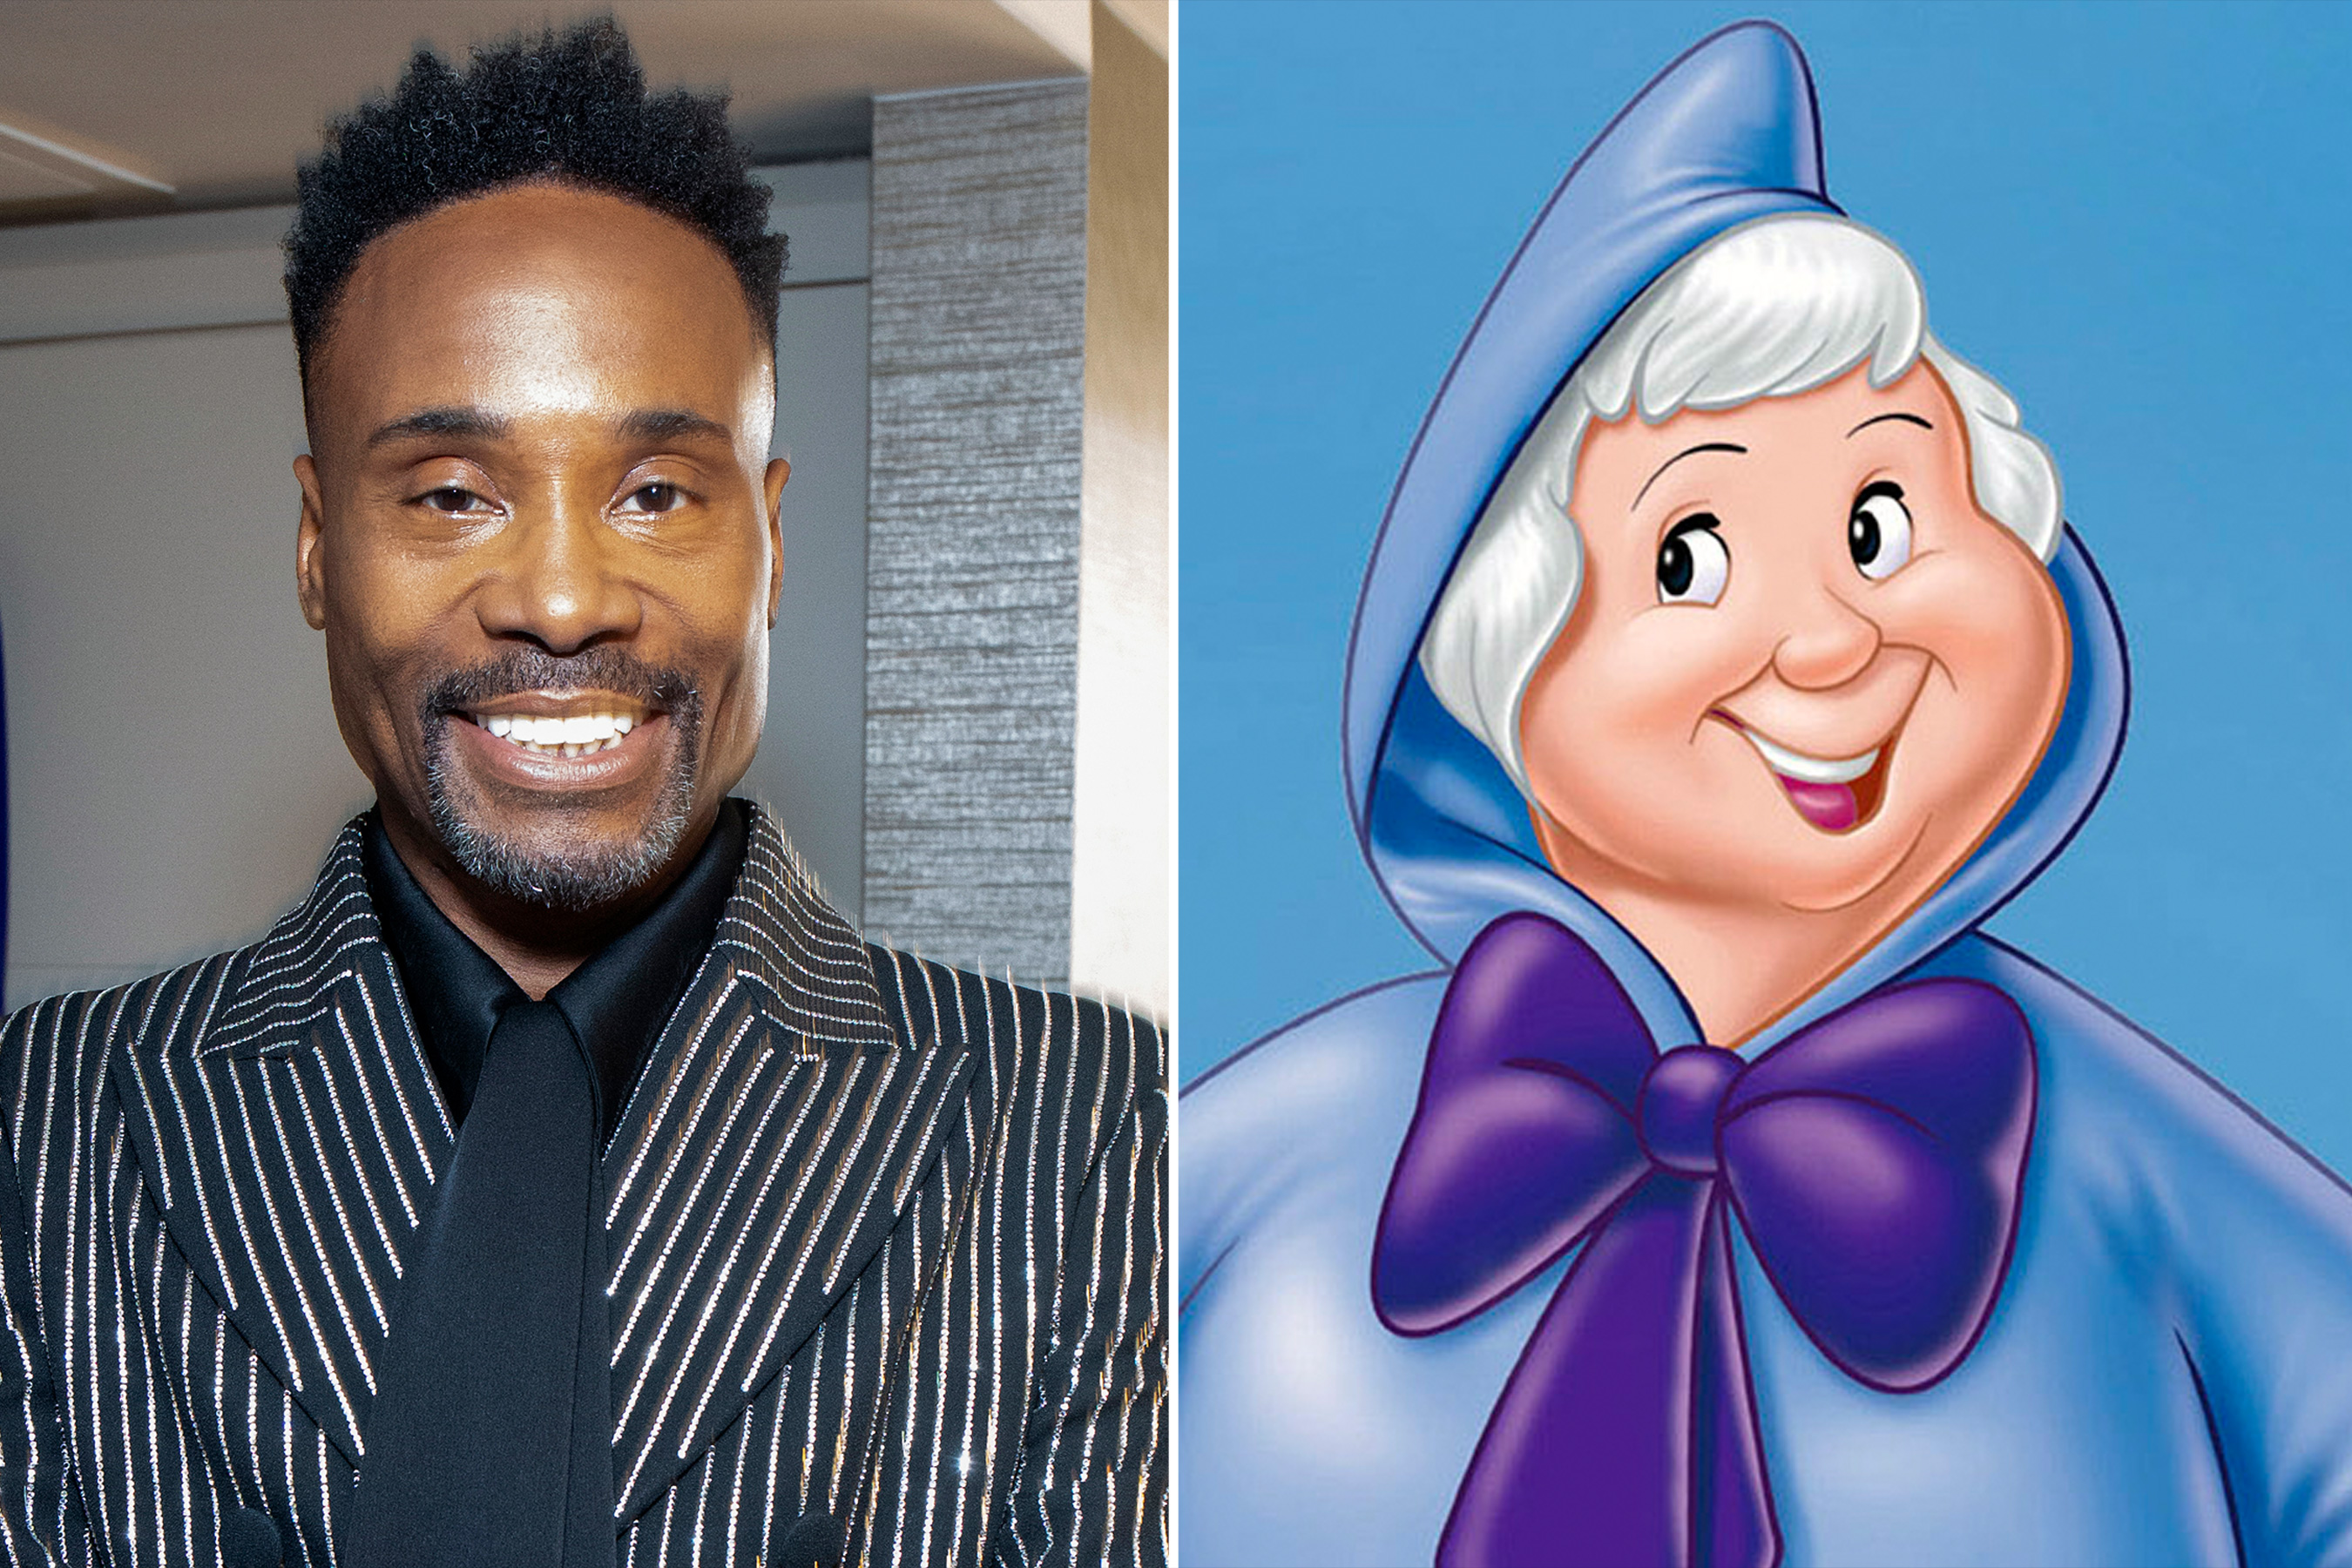 Billy Porter Will Play the Fairy Godmother in Latest Live-Action Cinderella Movie: 'I'm Ready'